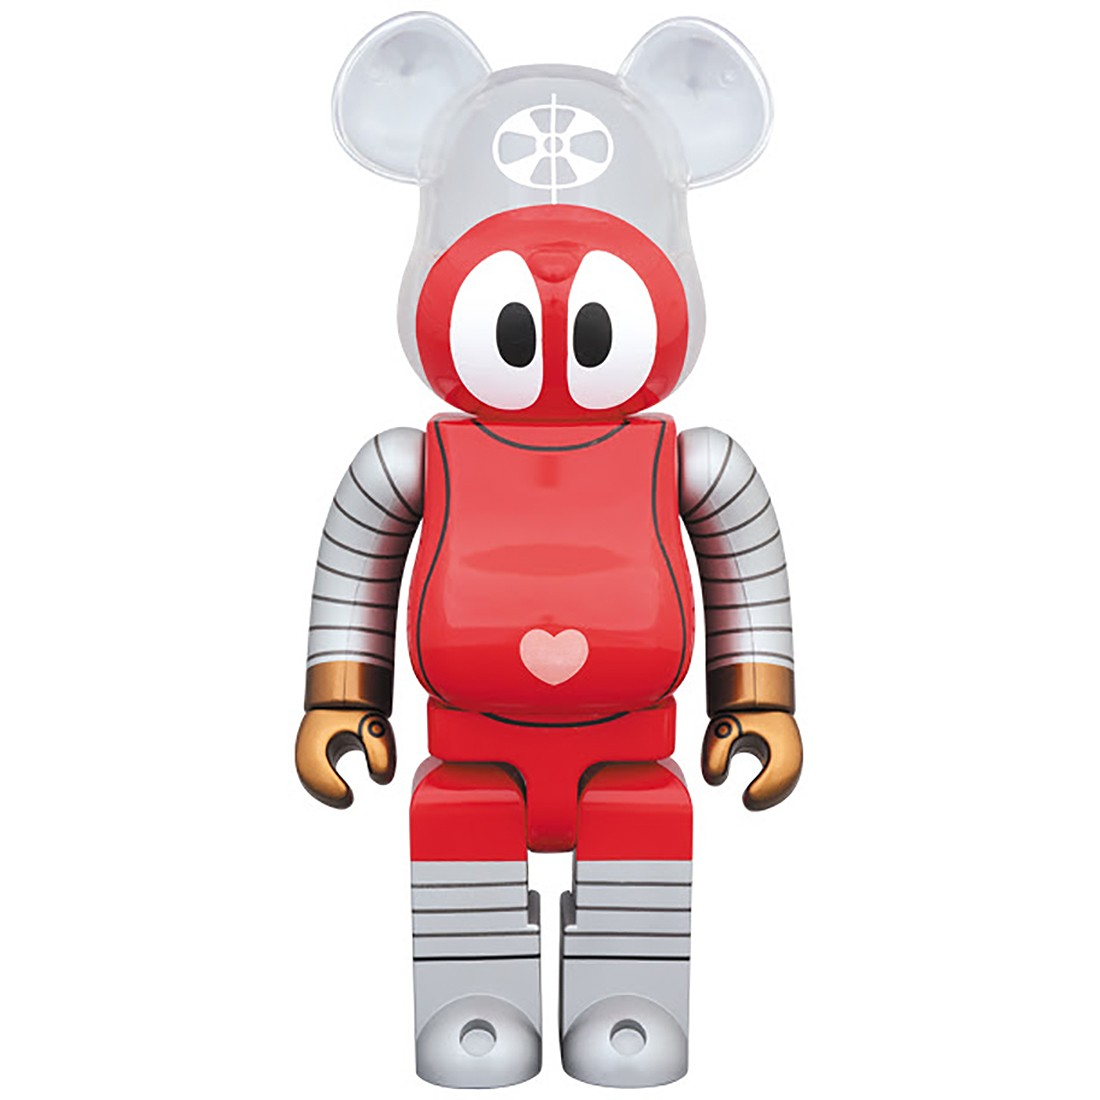 Medicom Robocon 400% Bearbrick Figure (red)